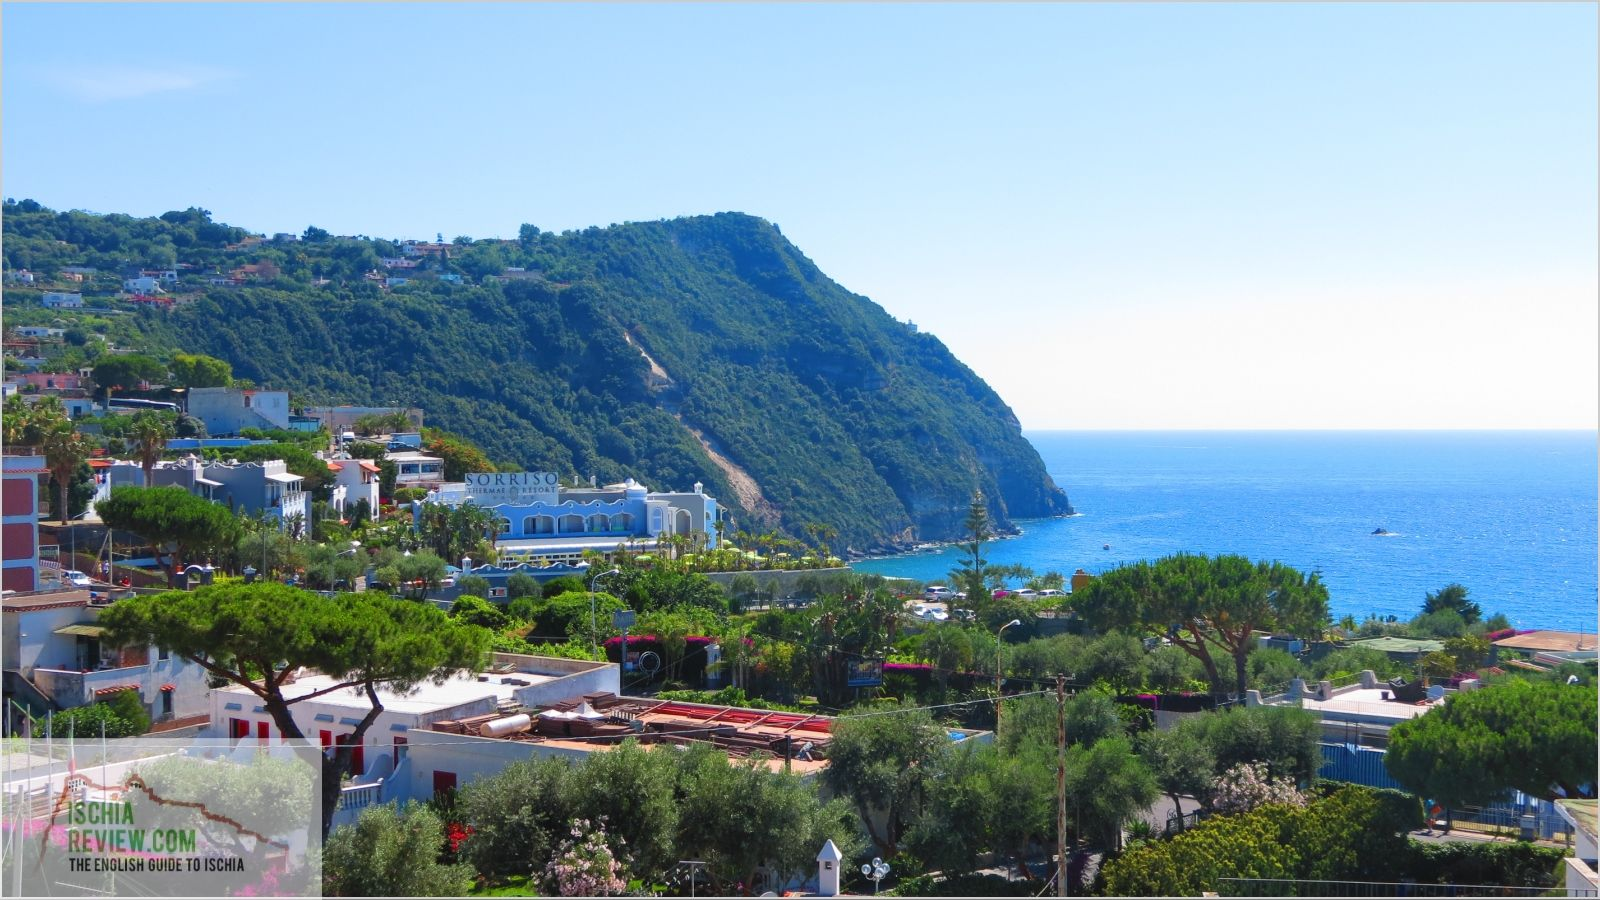 Citara Bay, Forio d'Ischia (With images) Ischia, Italy